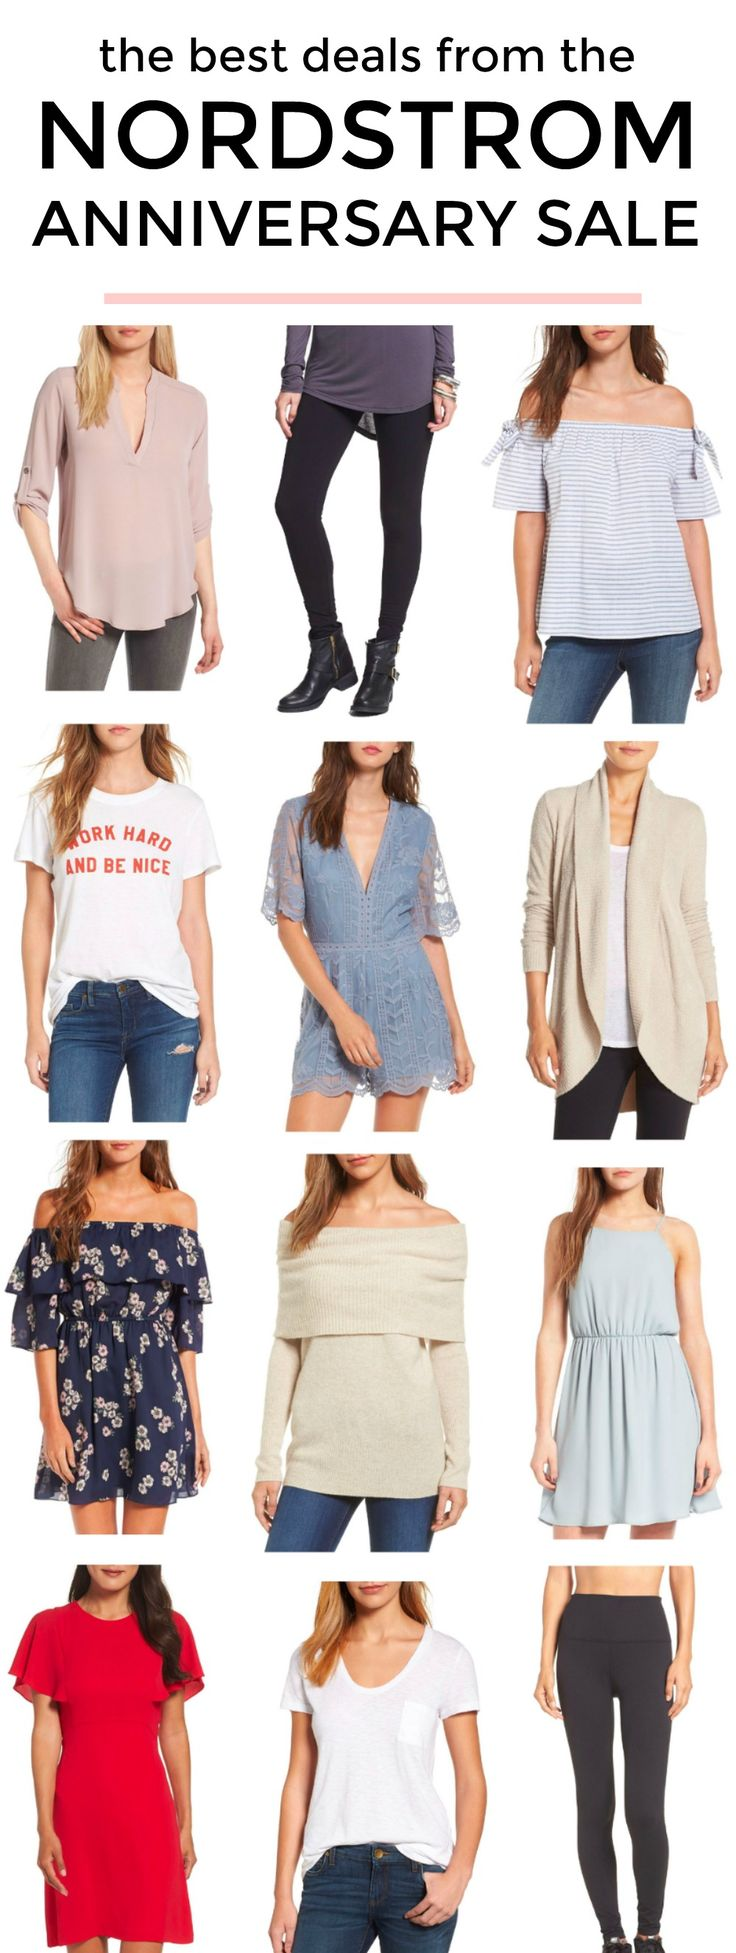 The BEST deals from the Nordstrom Anniversary Sale! So many affordable fashion finds! | Affordable outfit ideas and cute fashion items from Nordstrom curated by Orlando, Florida fashion blogger Ashley Brooke Nicholas | sale alert, Nordstrom sale, Nordstrom outfits, cute outfits, casual outfit ideas, dresses, off the shoulder sweater, Zella leggings, Barefoot Dreams cardigan